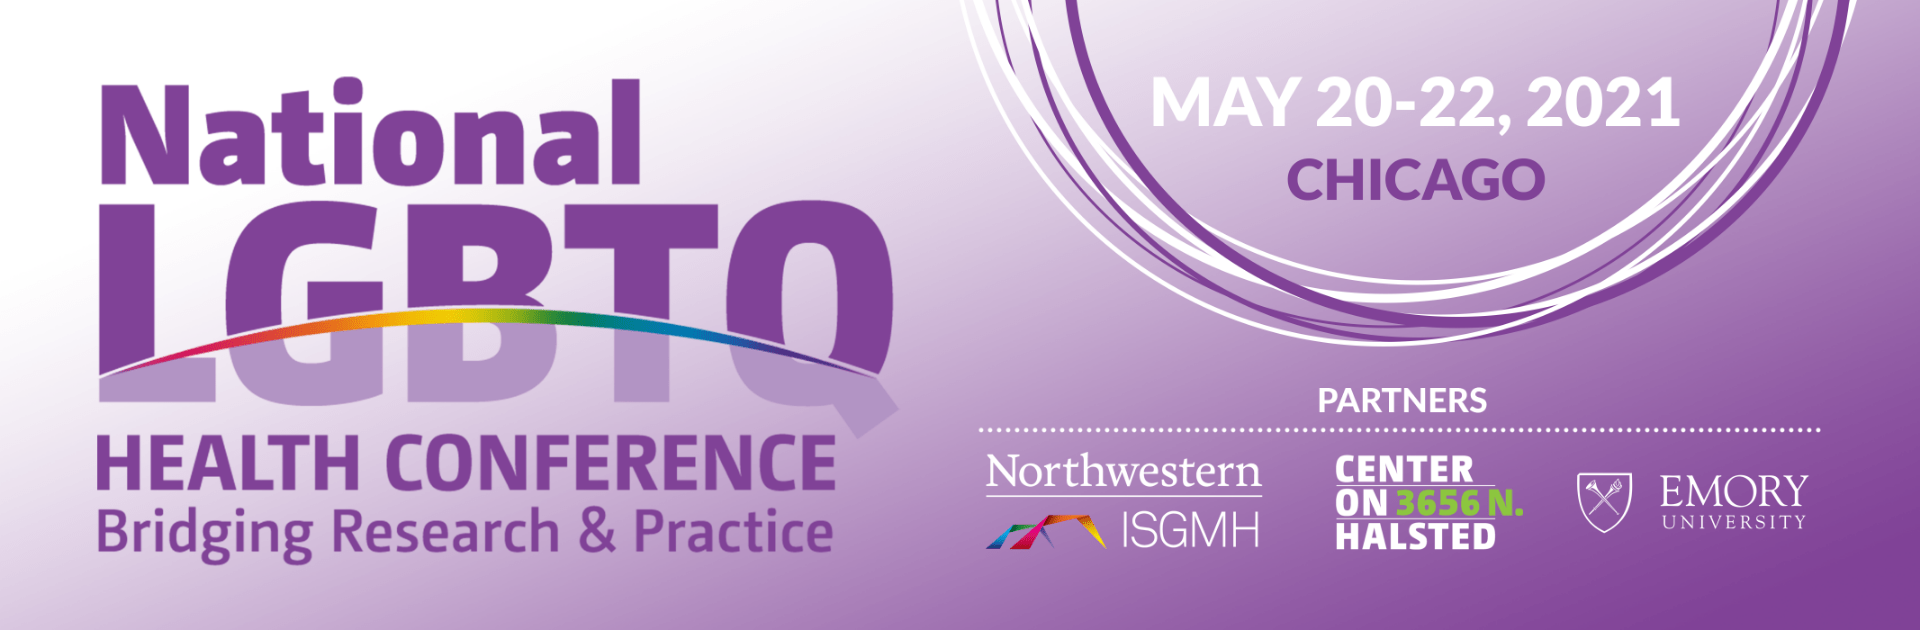 National LGBTQ Health Conference: Bridging Research and Practice, May 20-22, 2021 Chicago